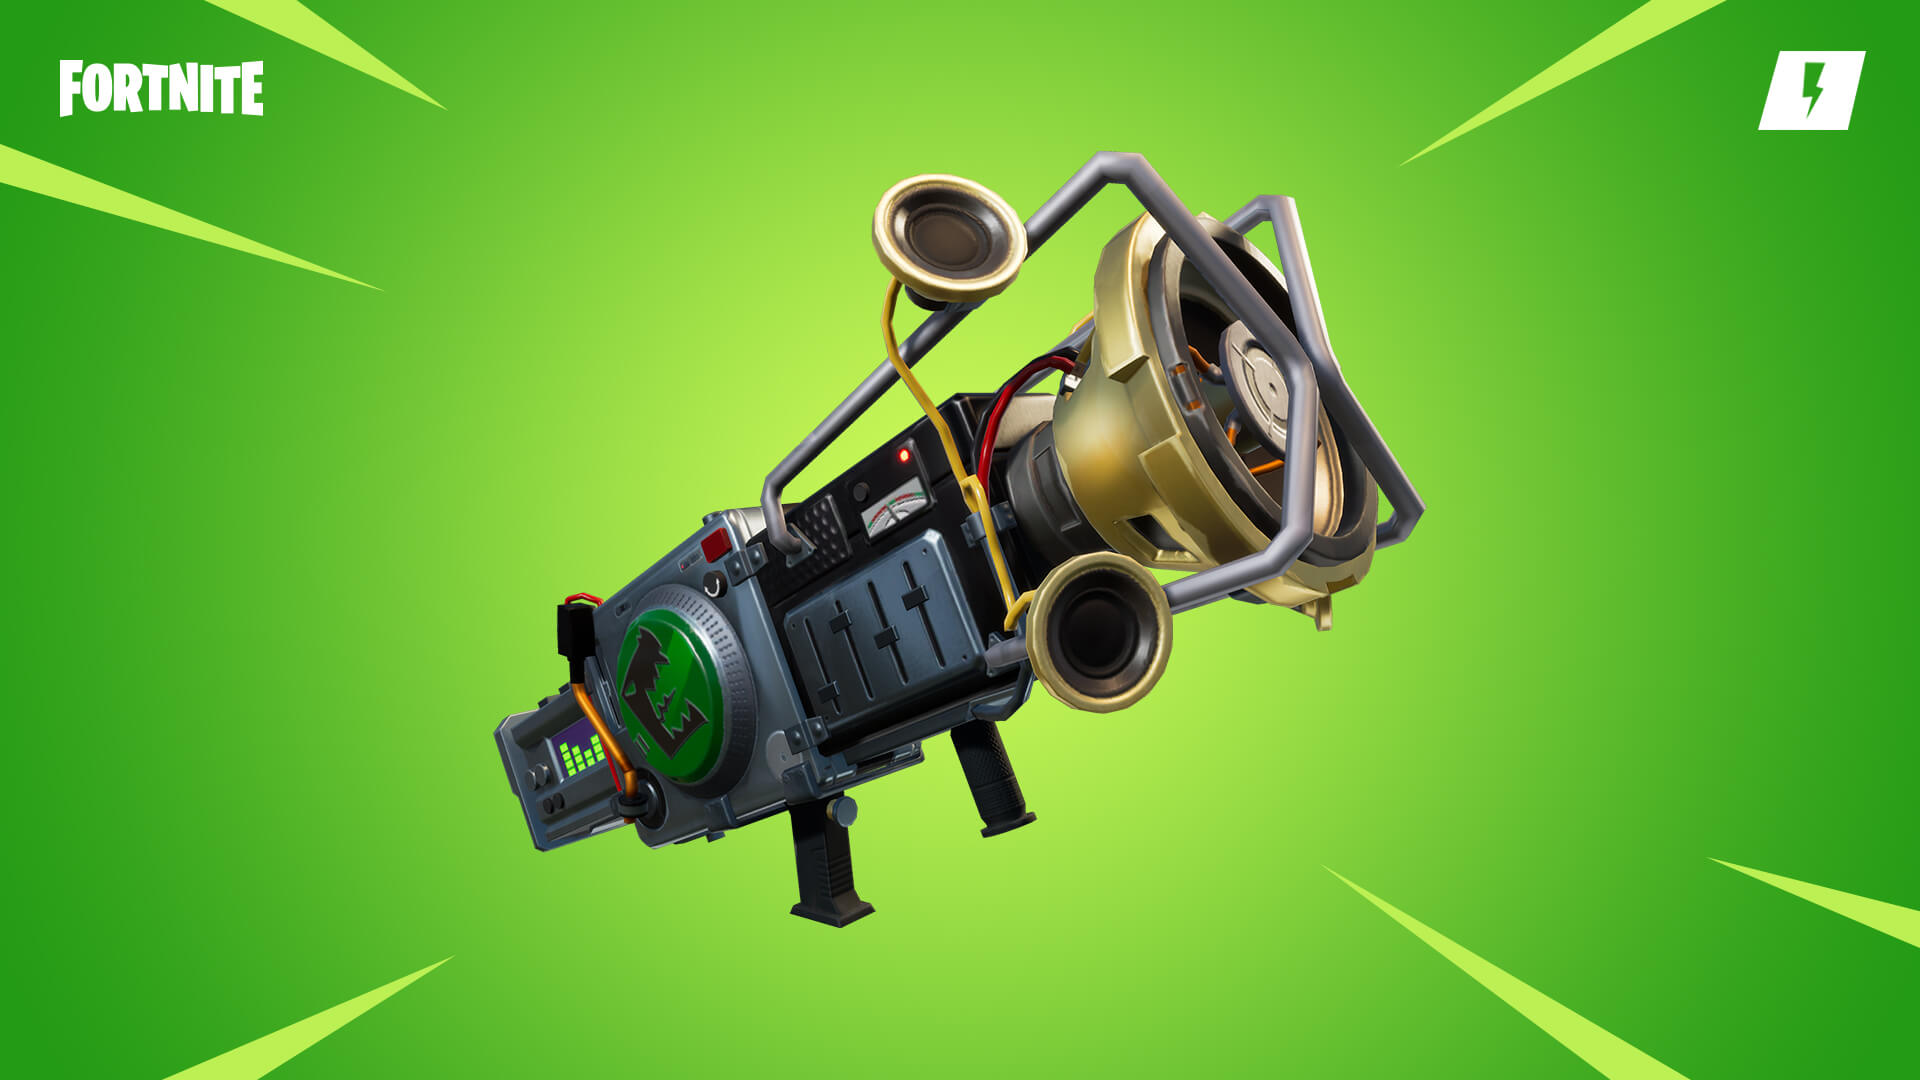 Fortnite%2Fpatch notes%2Fv10 31 patch notes%2Fstw header v10 31 patch notes%2F10StW BoomboxLauncher Social 1920x1080 103a5ba2f037efed2e8c83b5ae568fc84f35d58c - Описание версии 10.31 для фортнайт